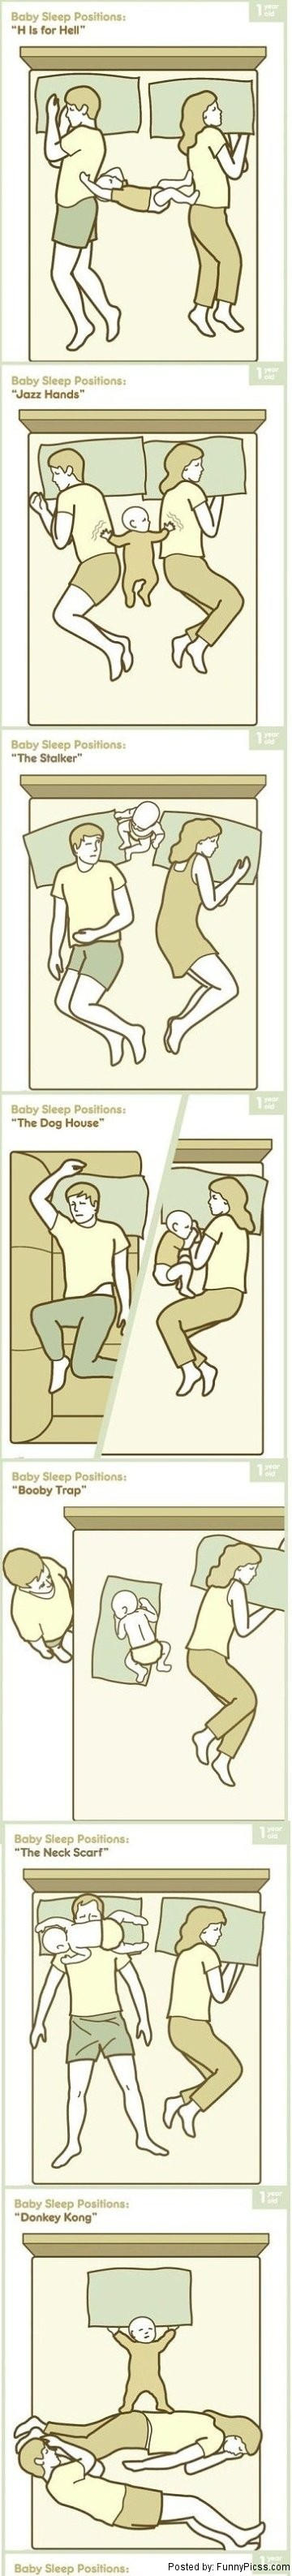 baby sleep positions